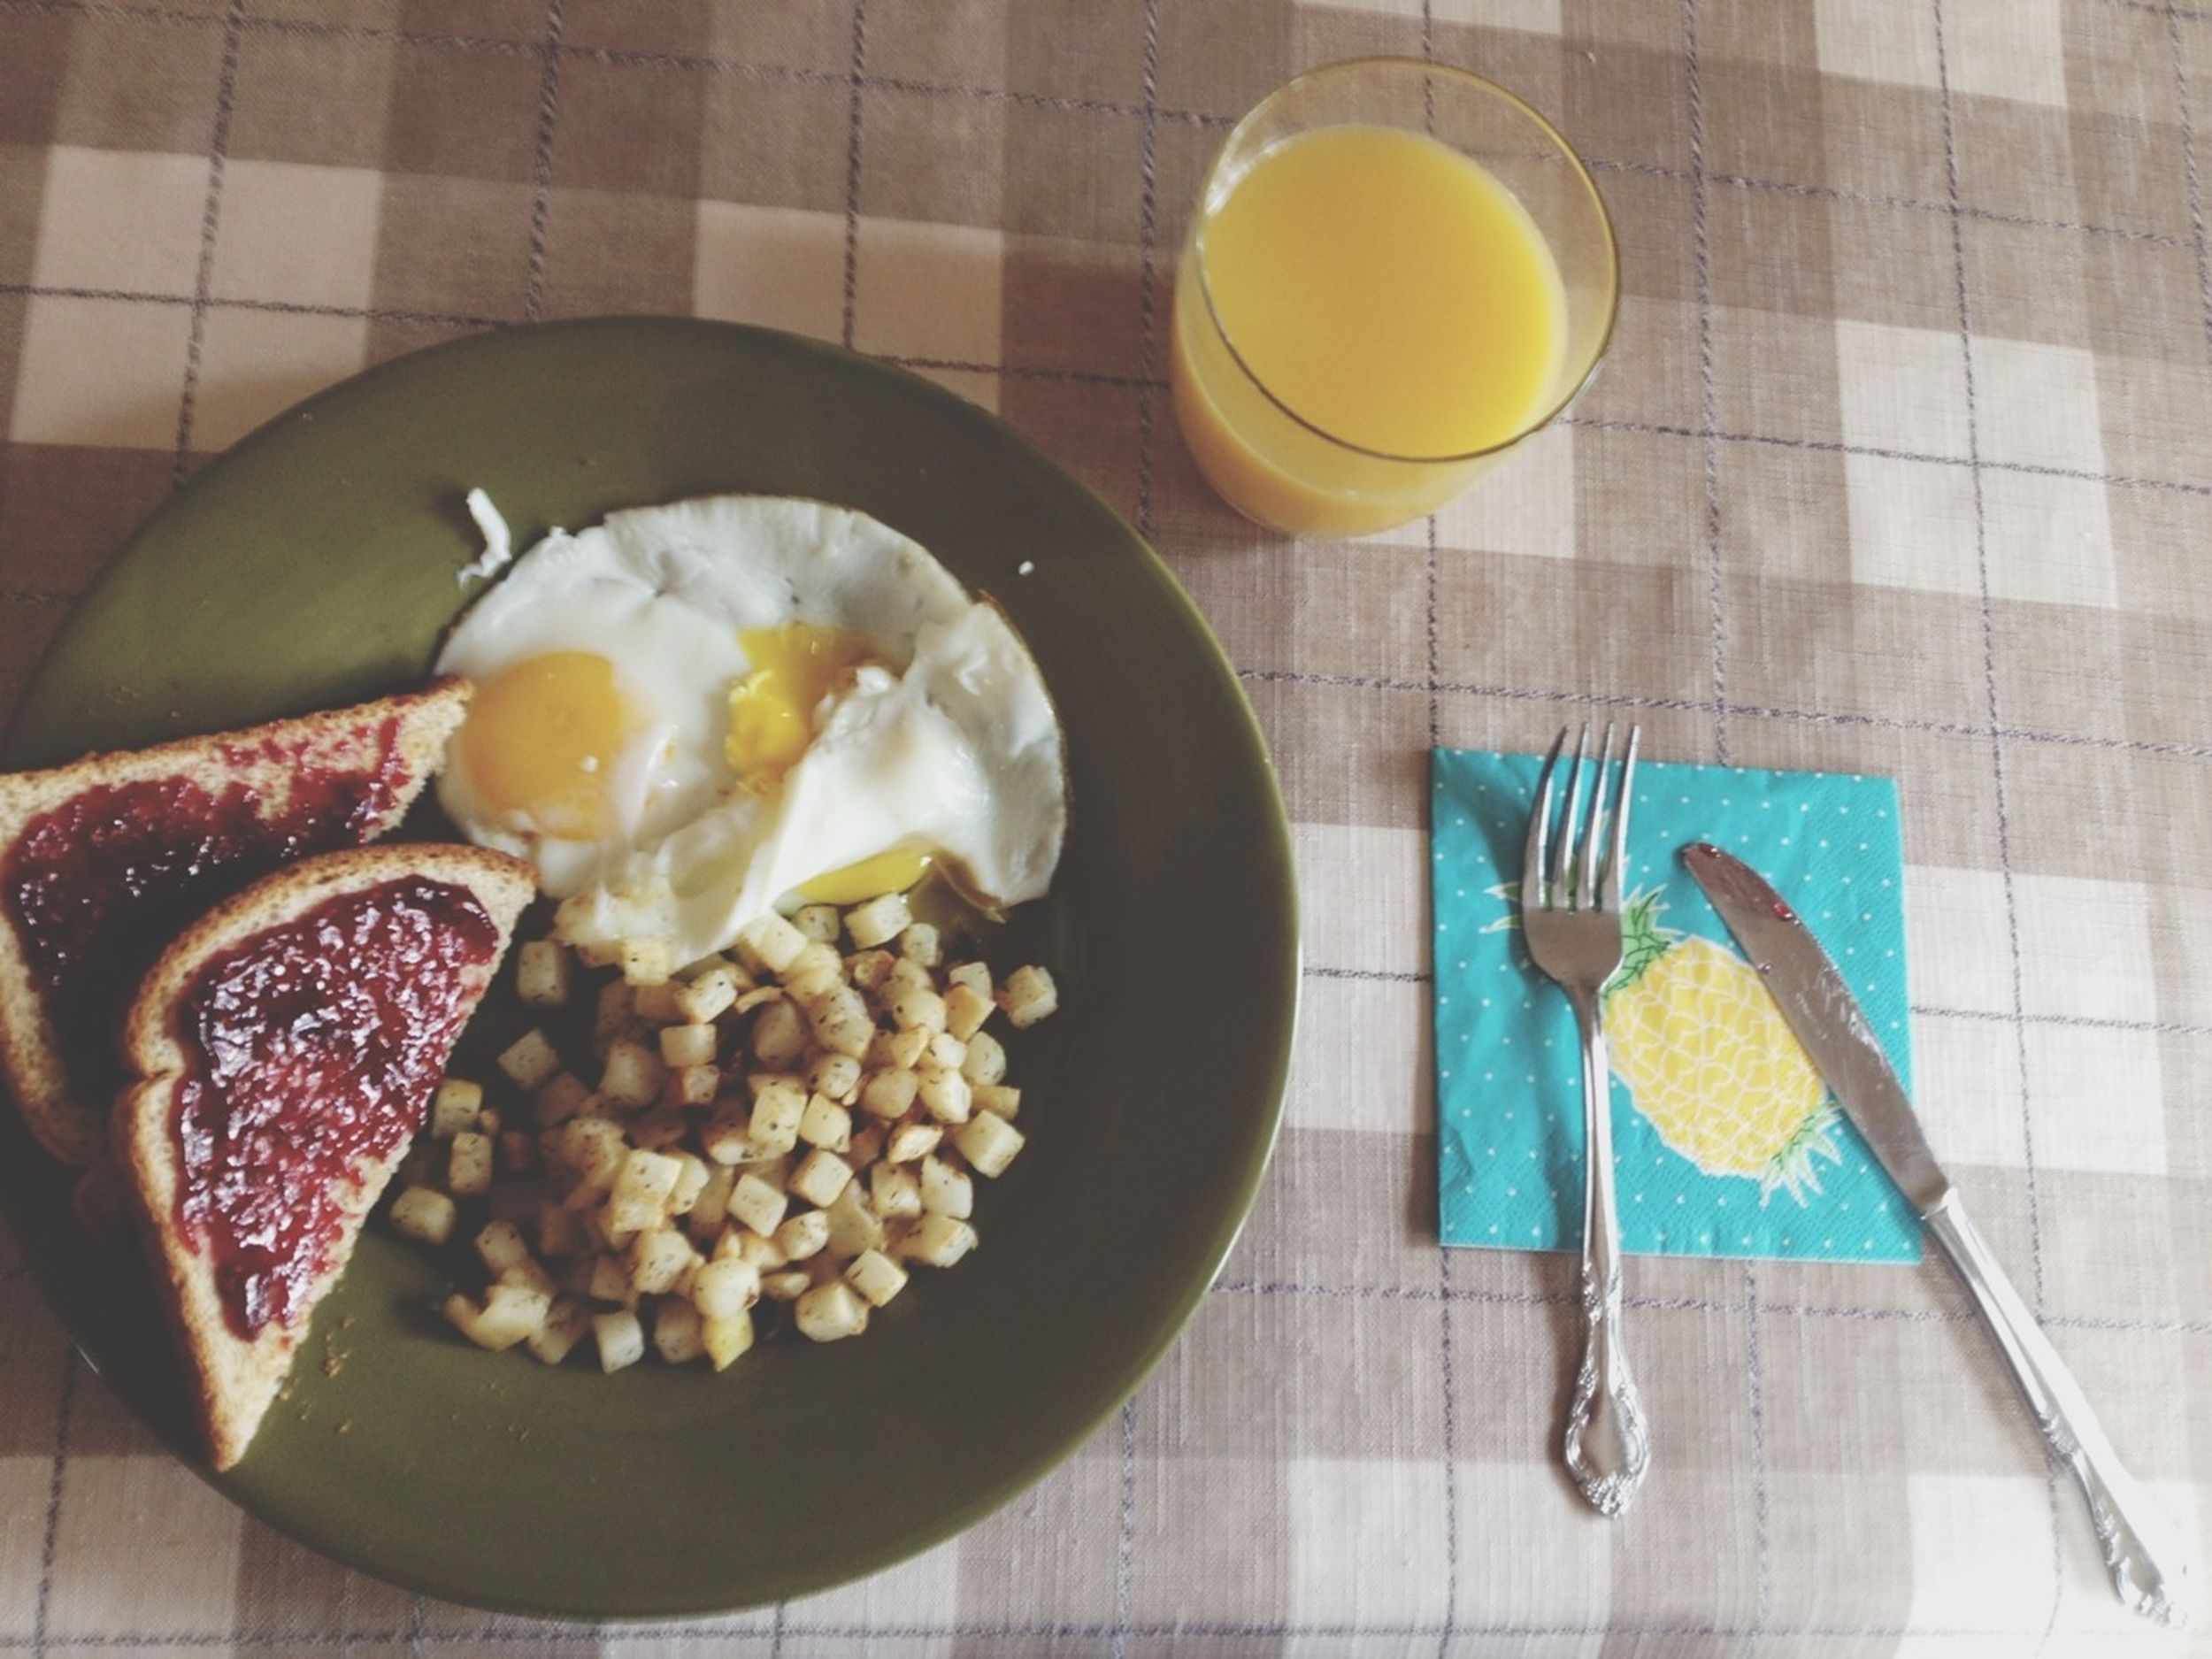 made some delicious breakfast!